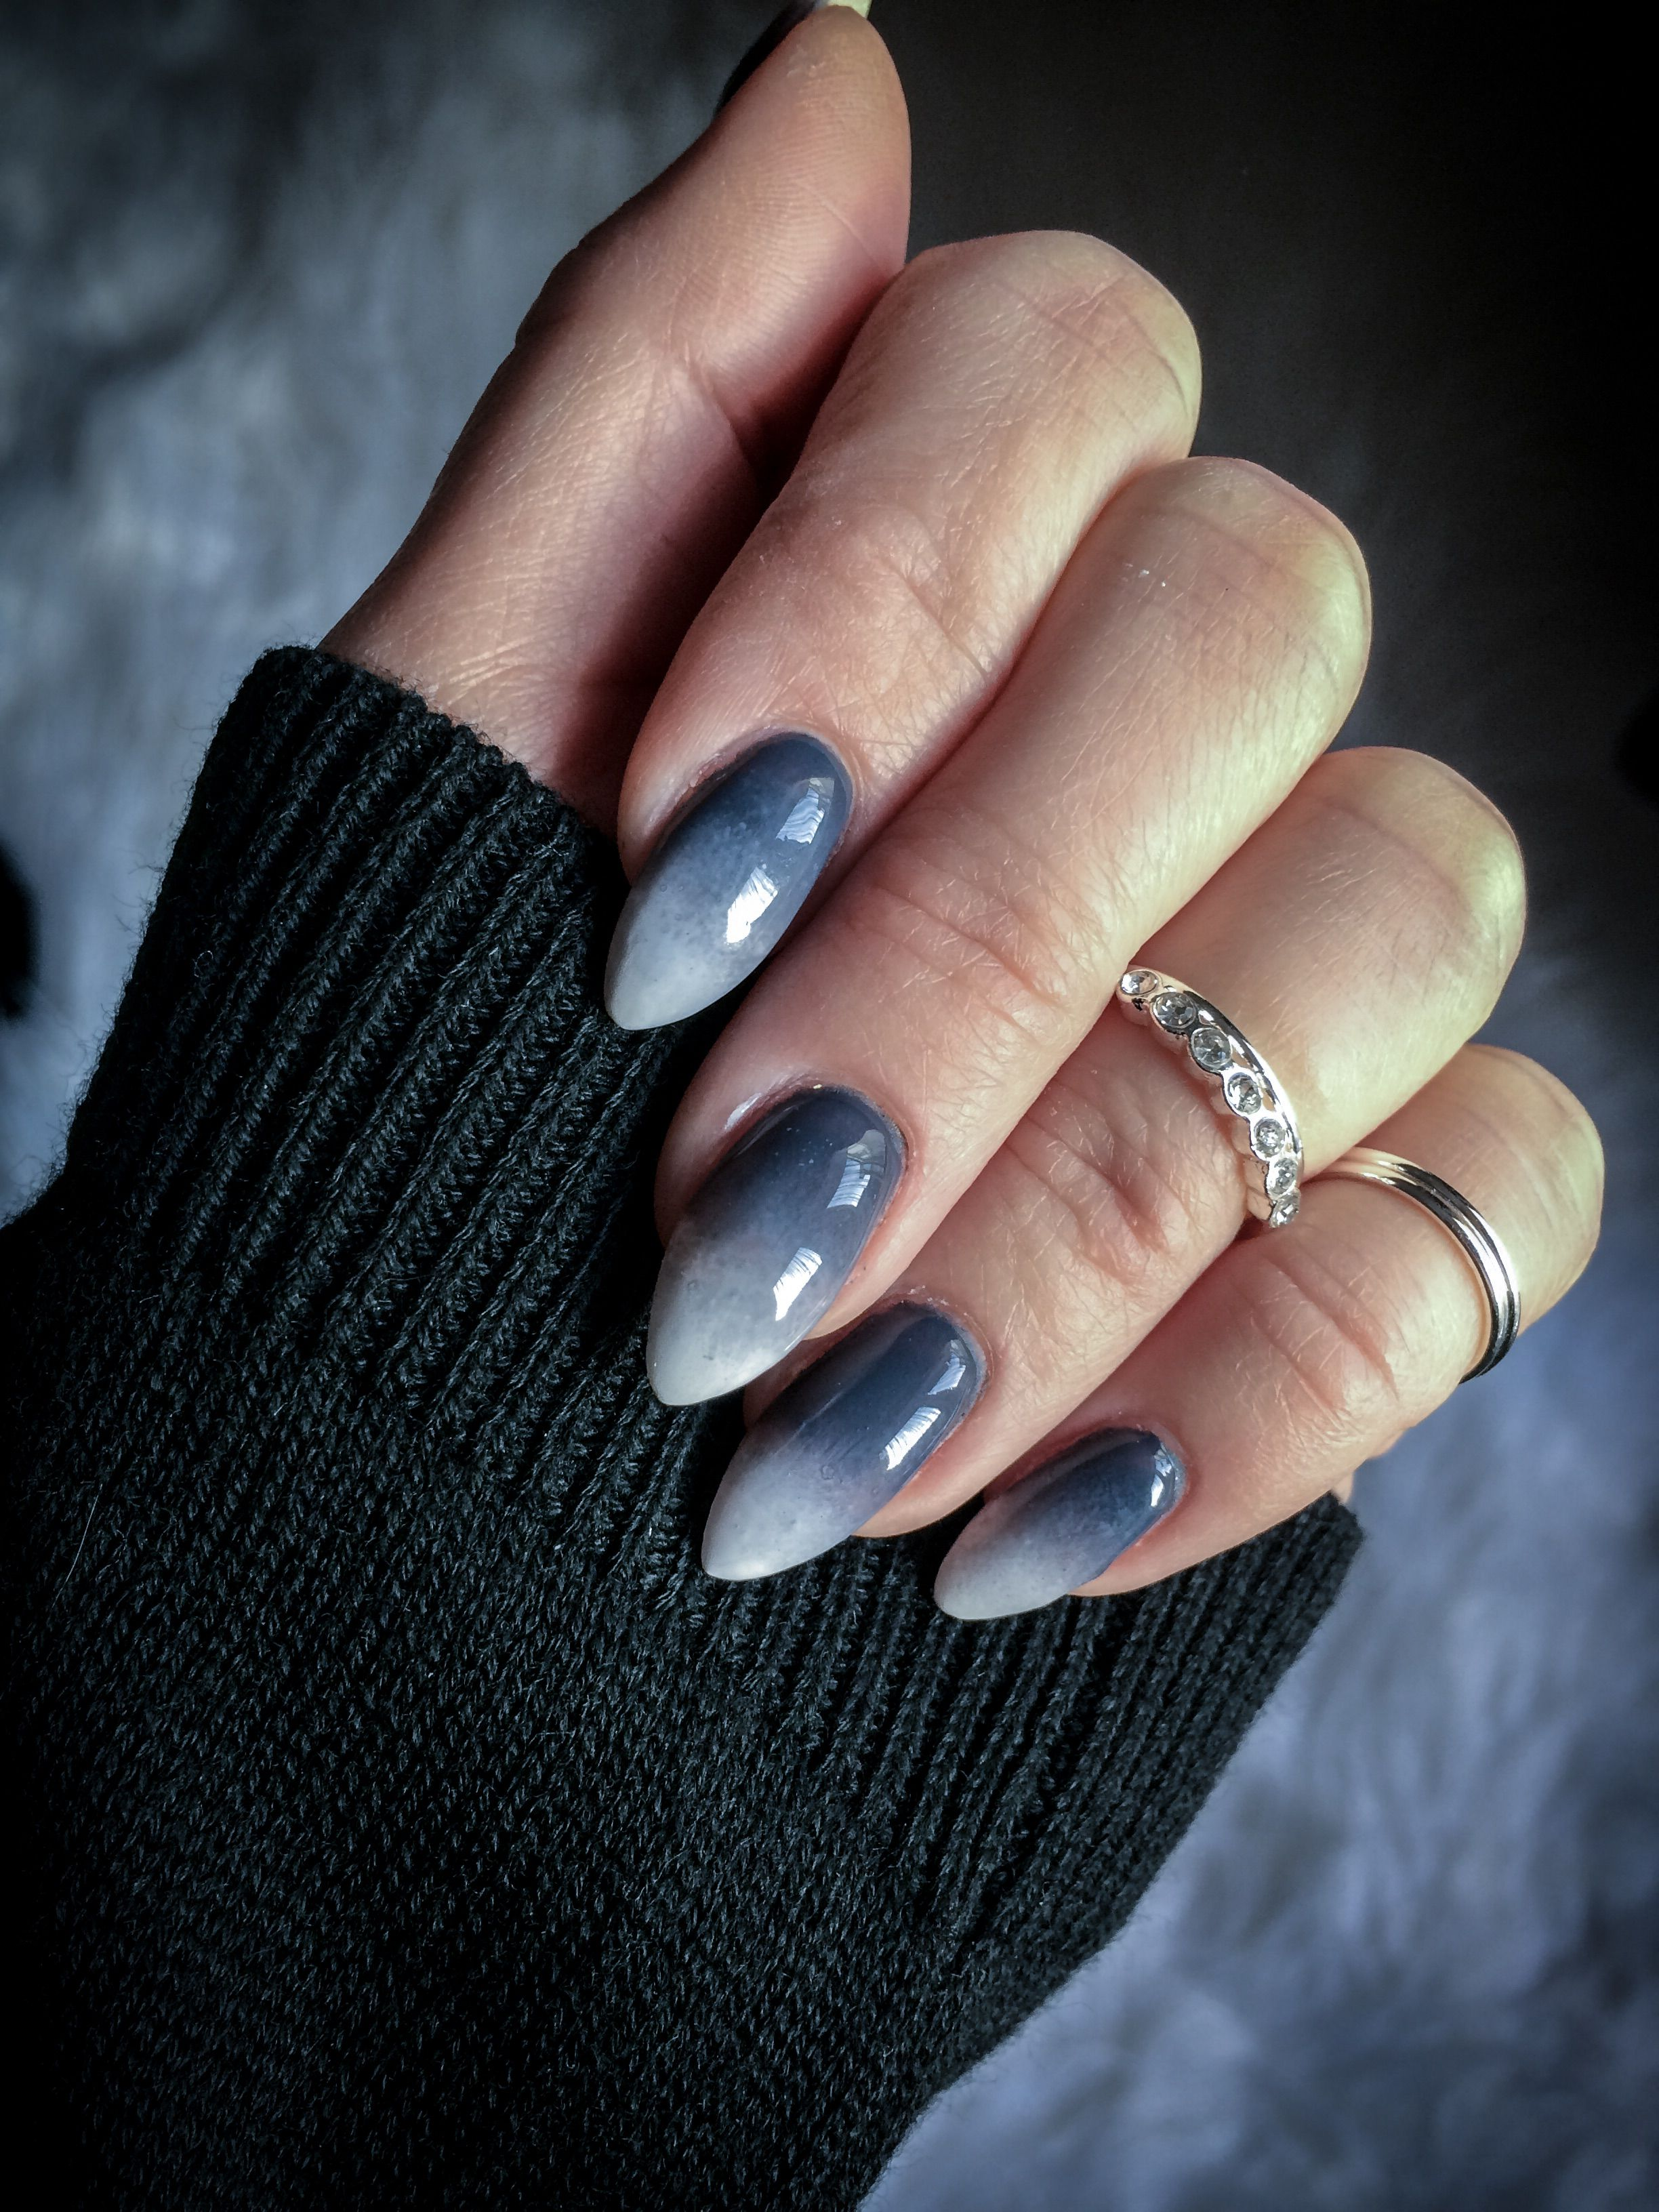 Pin on Nails Art & Care